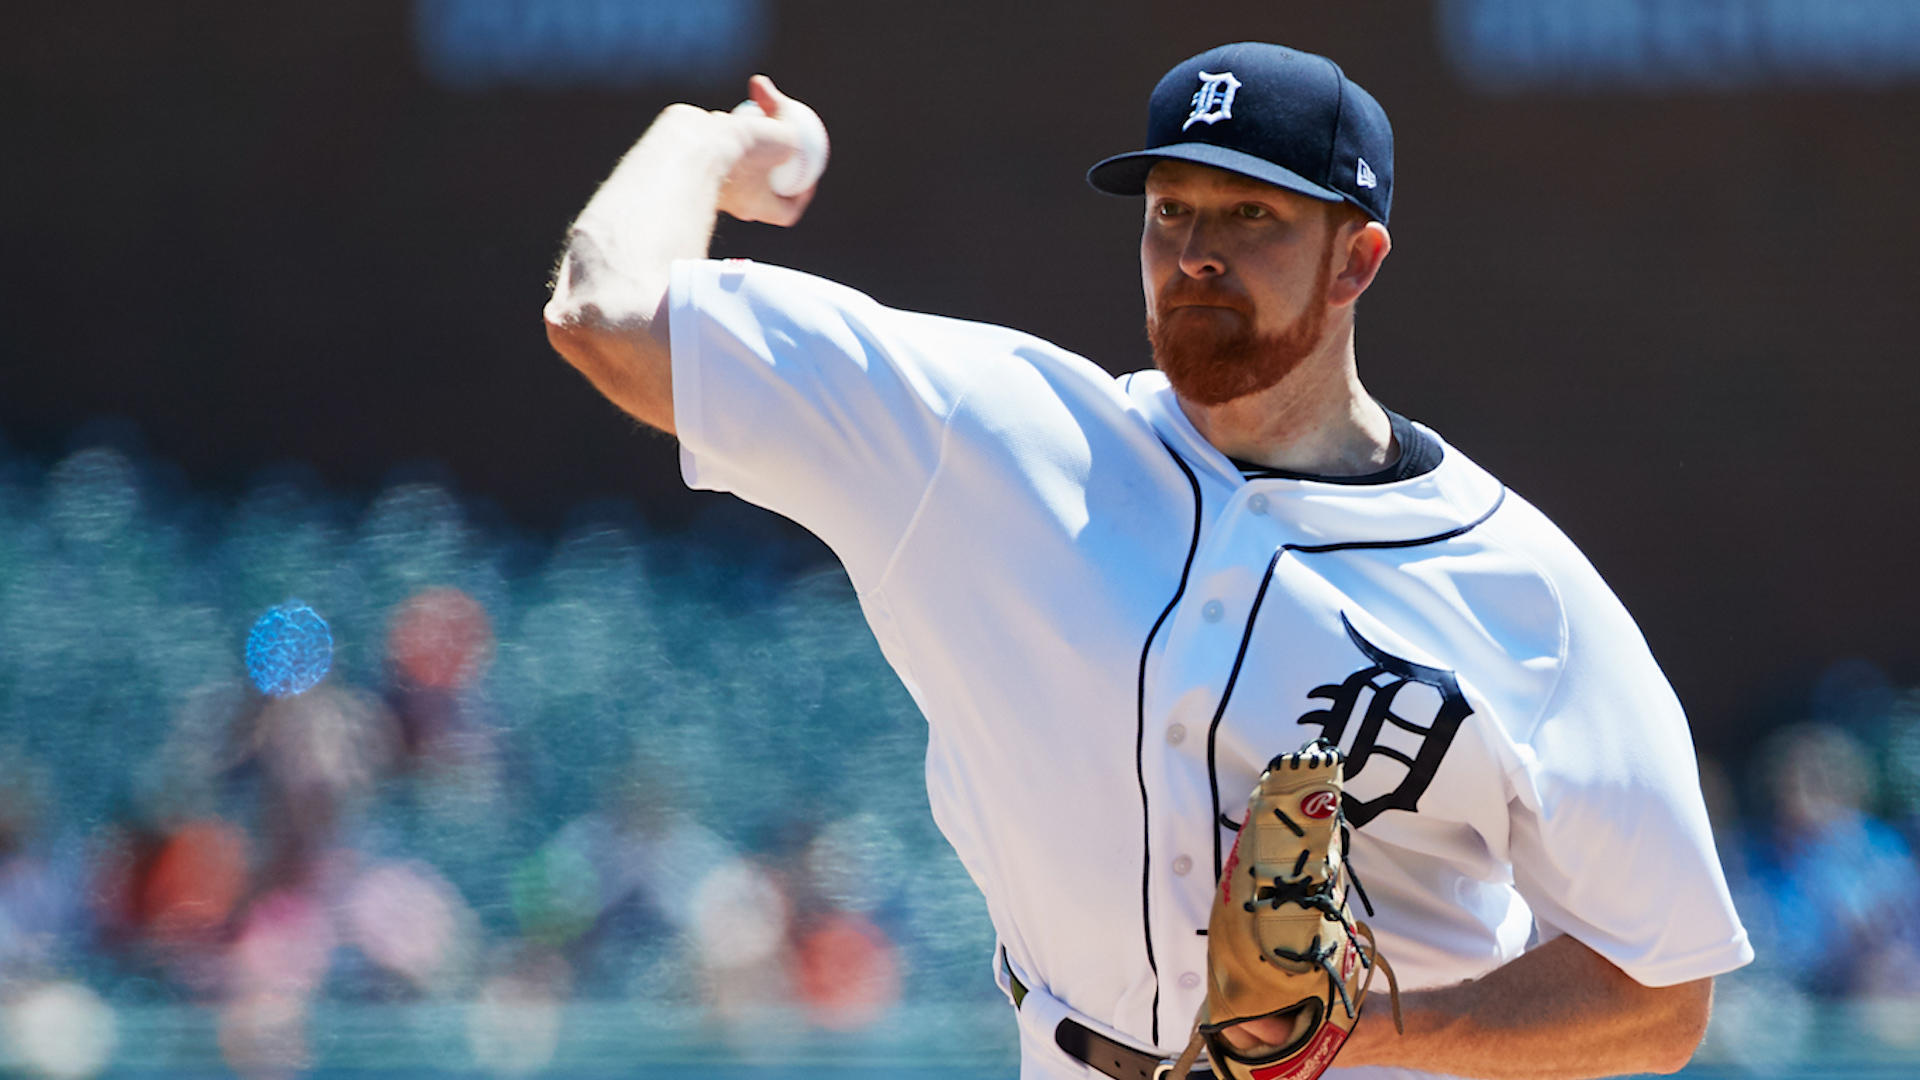 Fantasy Baseball: ACES update shows five potential breakout candidates